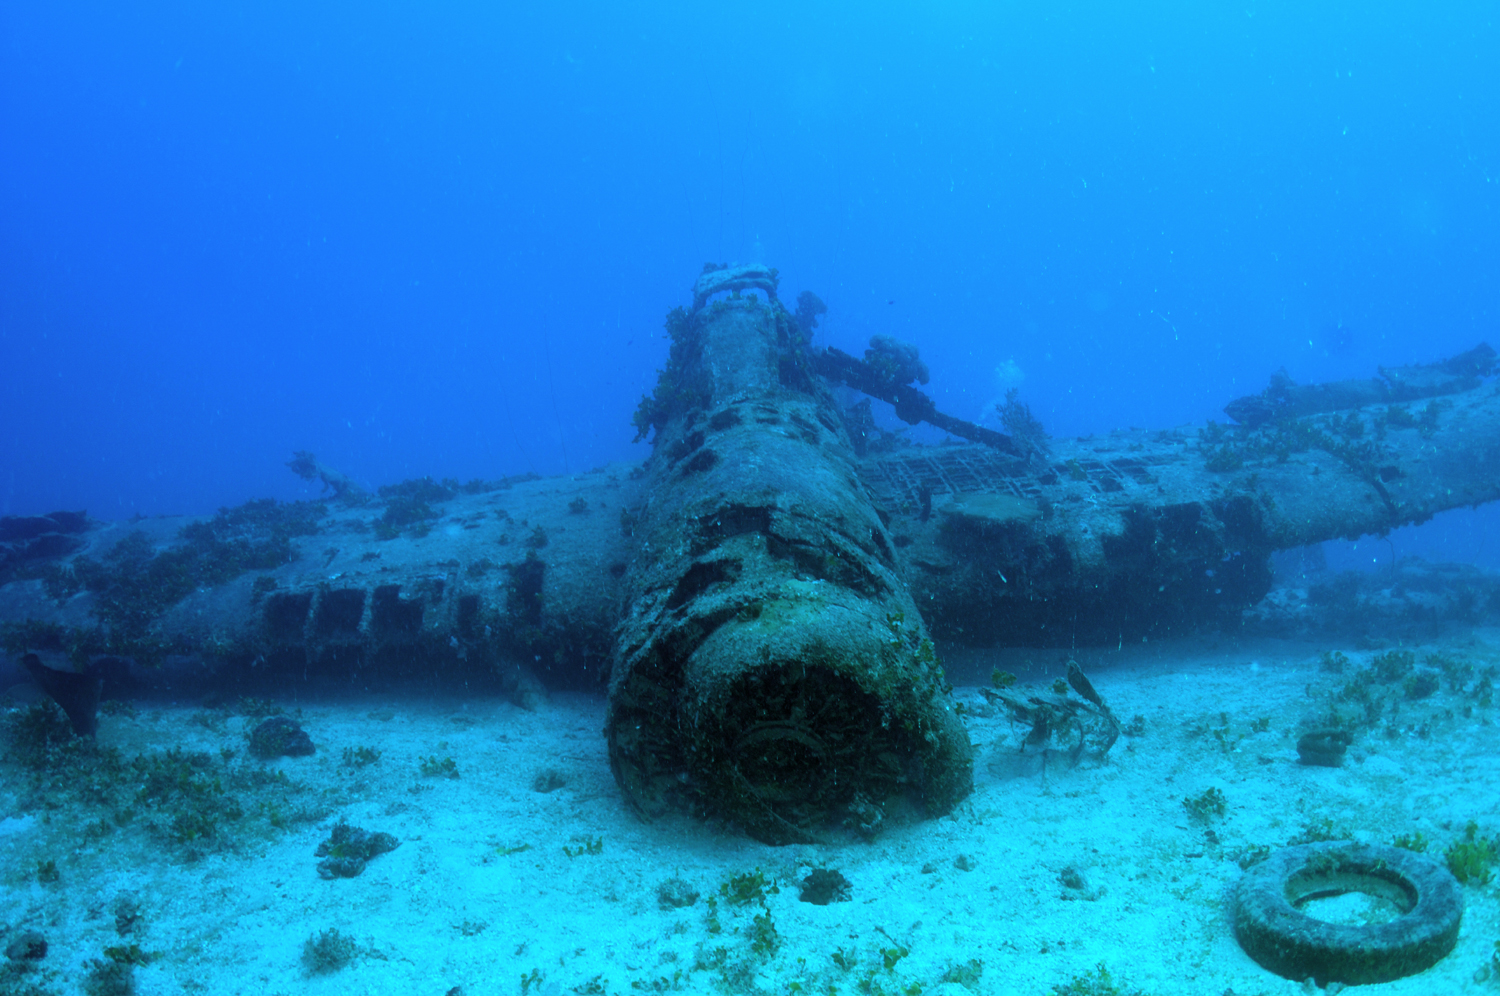 """The """"Jake"""" #2 wreck lying upside down on the seabed"""